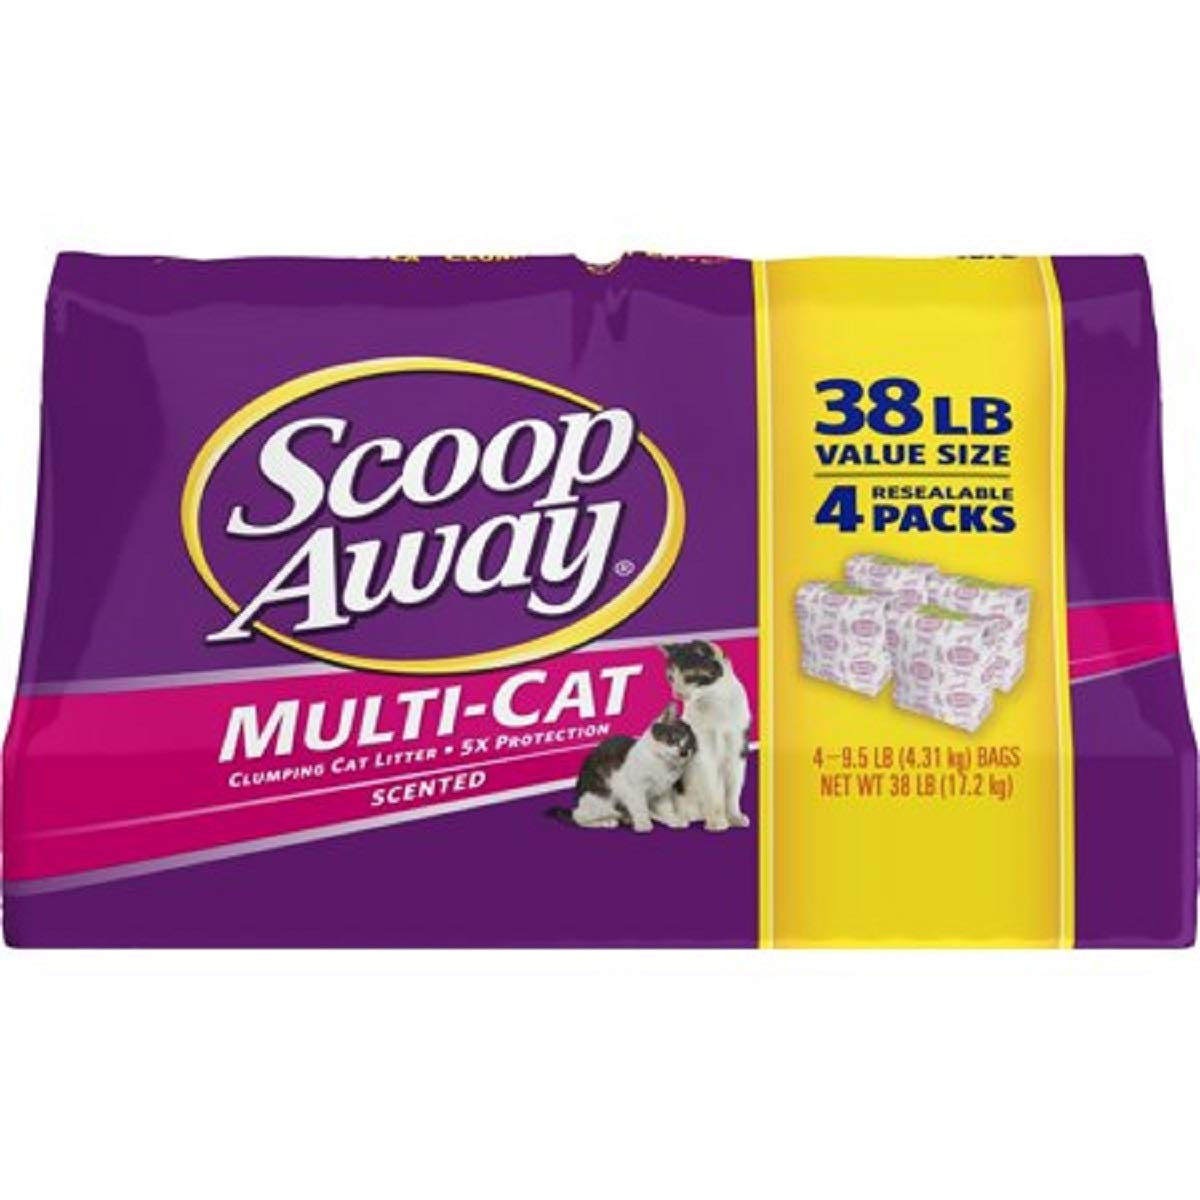 Amazon.com : Scoop Away Multi-Cat, Scented Cat Litter, 25 Pound Carton (4Packs) : Pet Supplies